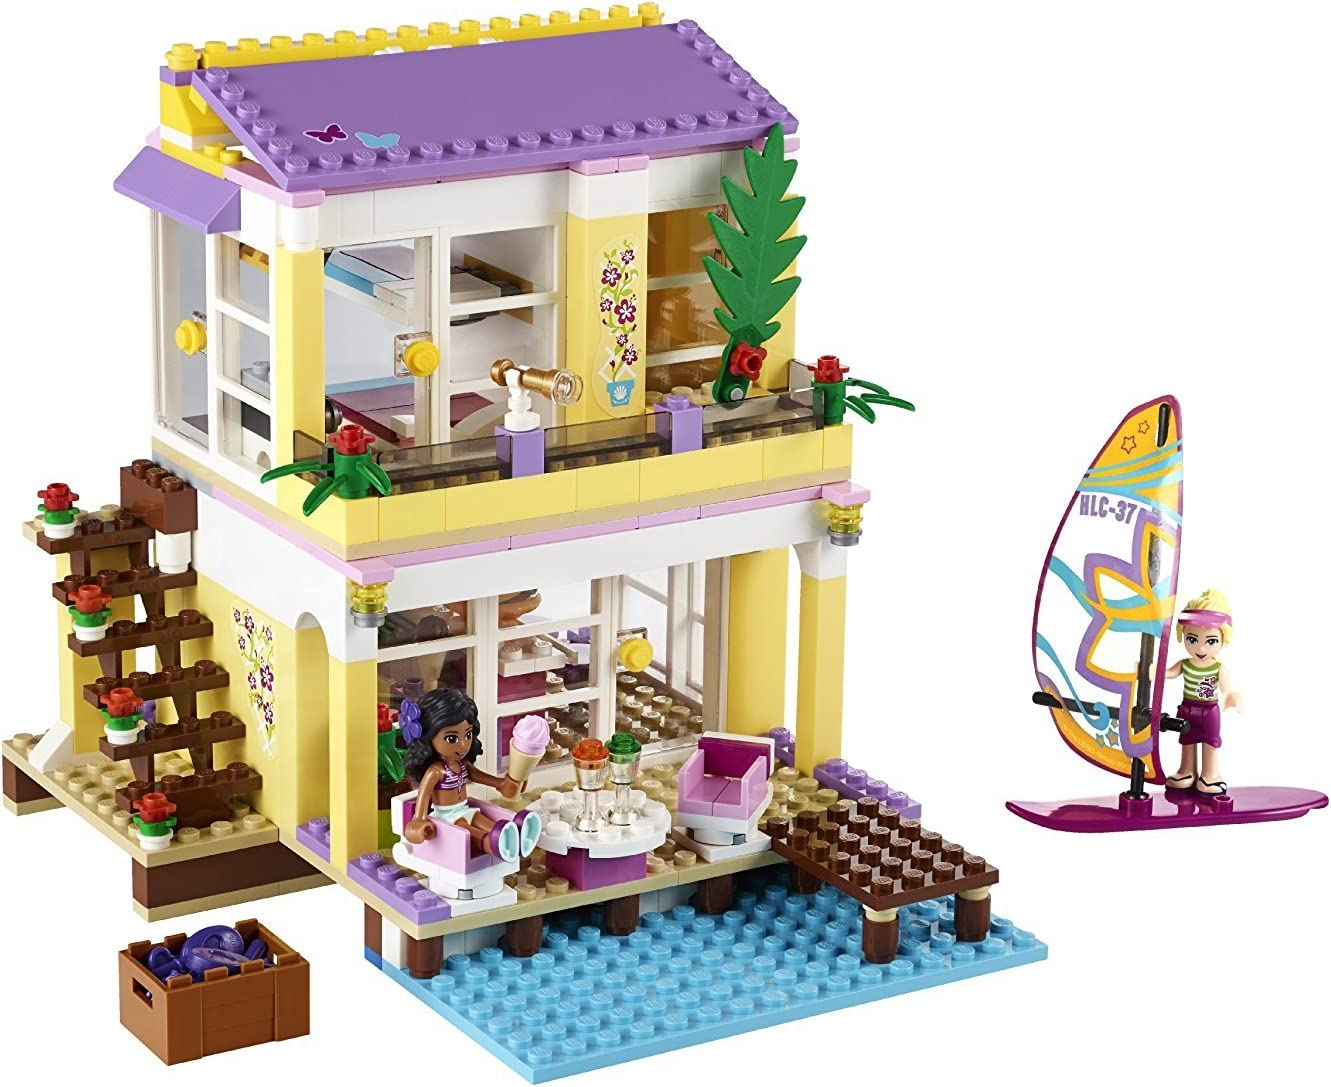 Lego Friends 41037 Jeu De Construction La Villa Sur La Plage